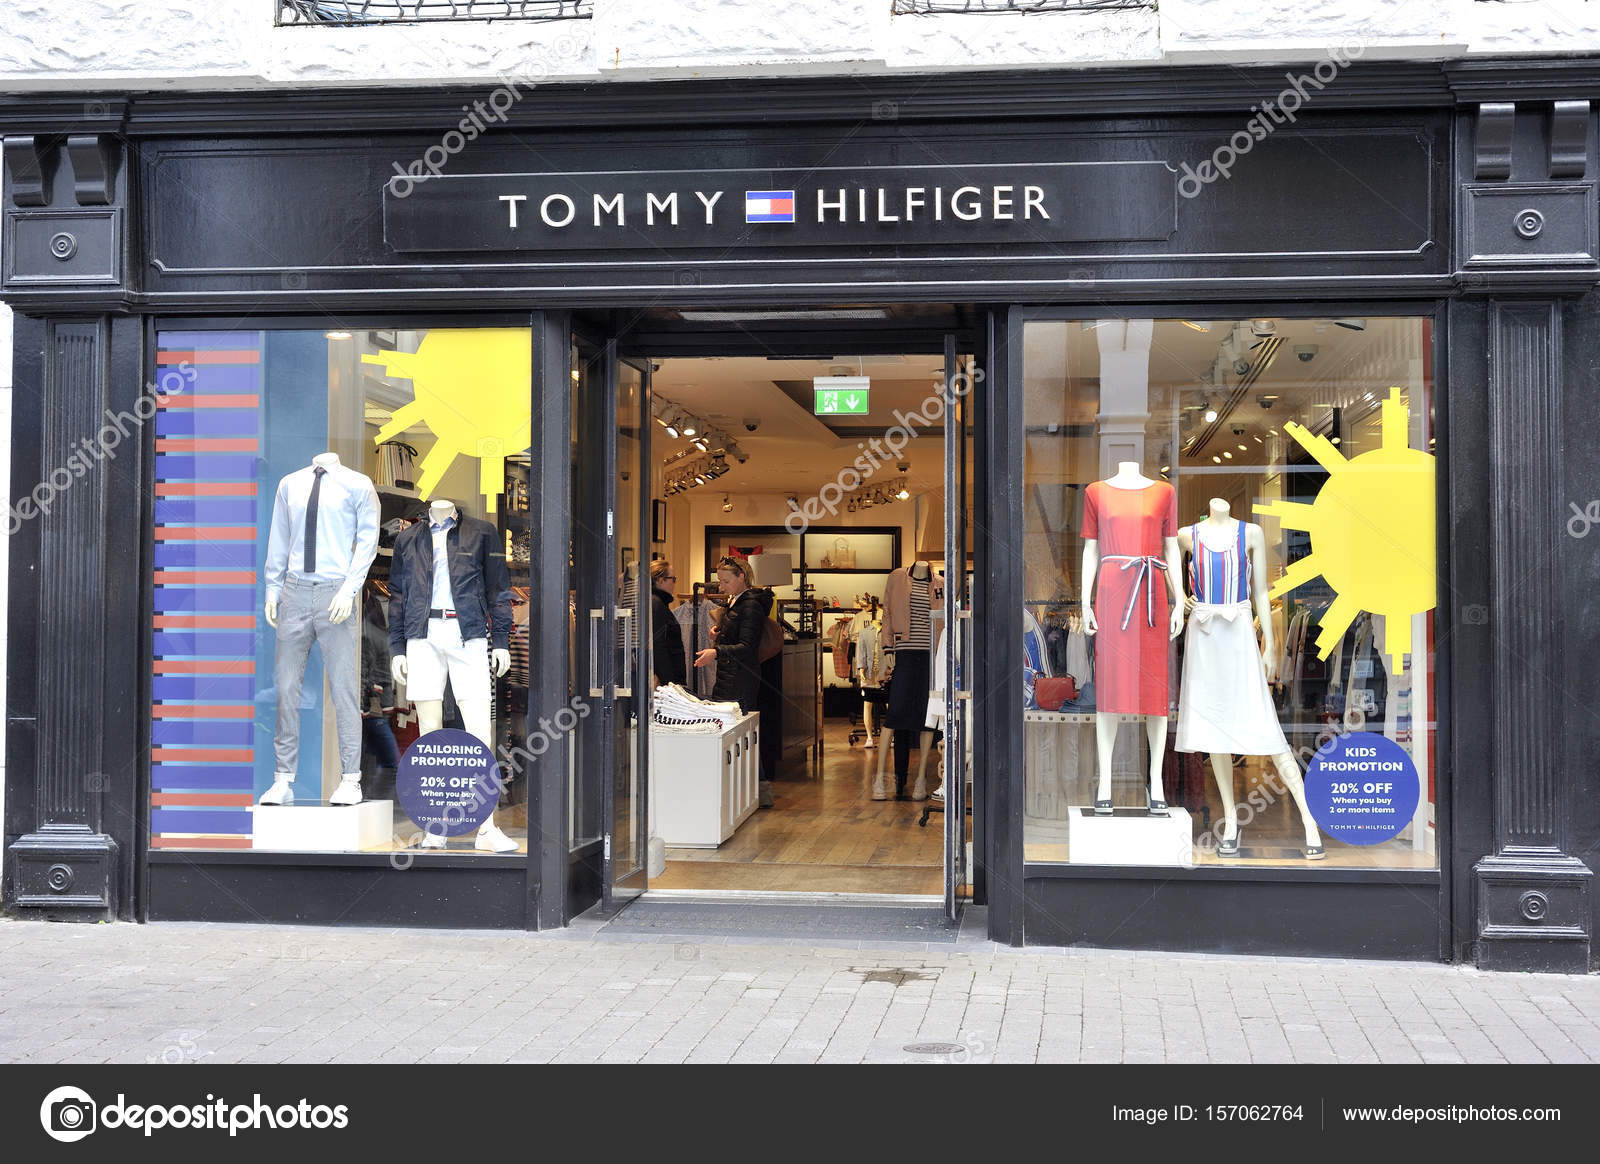 101ed4ee Shop Street, Galway, Ireland June 2017, Tommy Hilfiger Store, gi — Stock